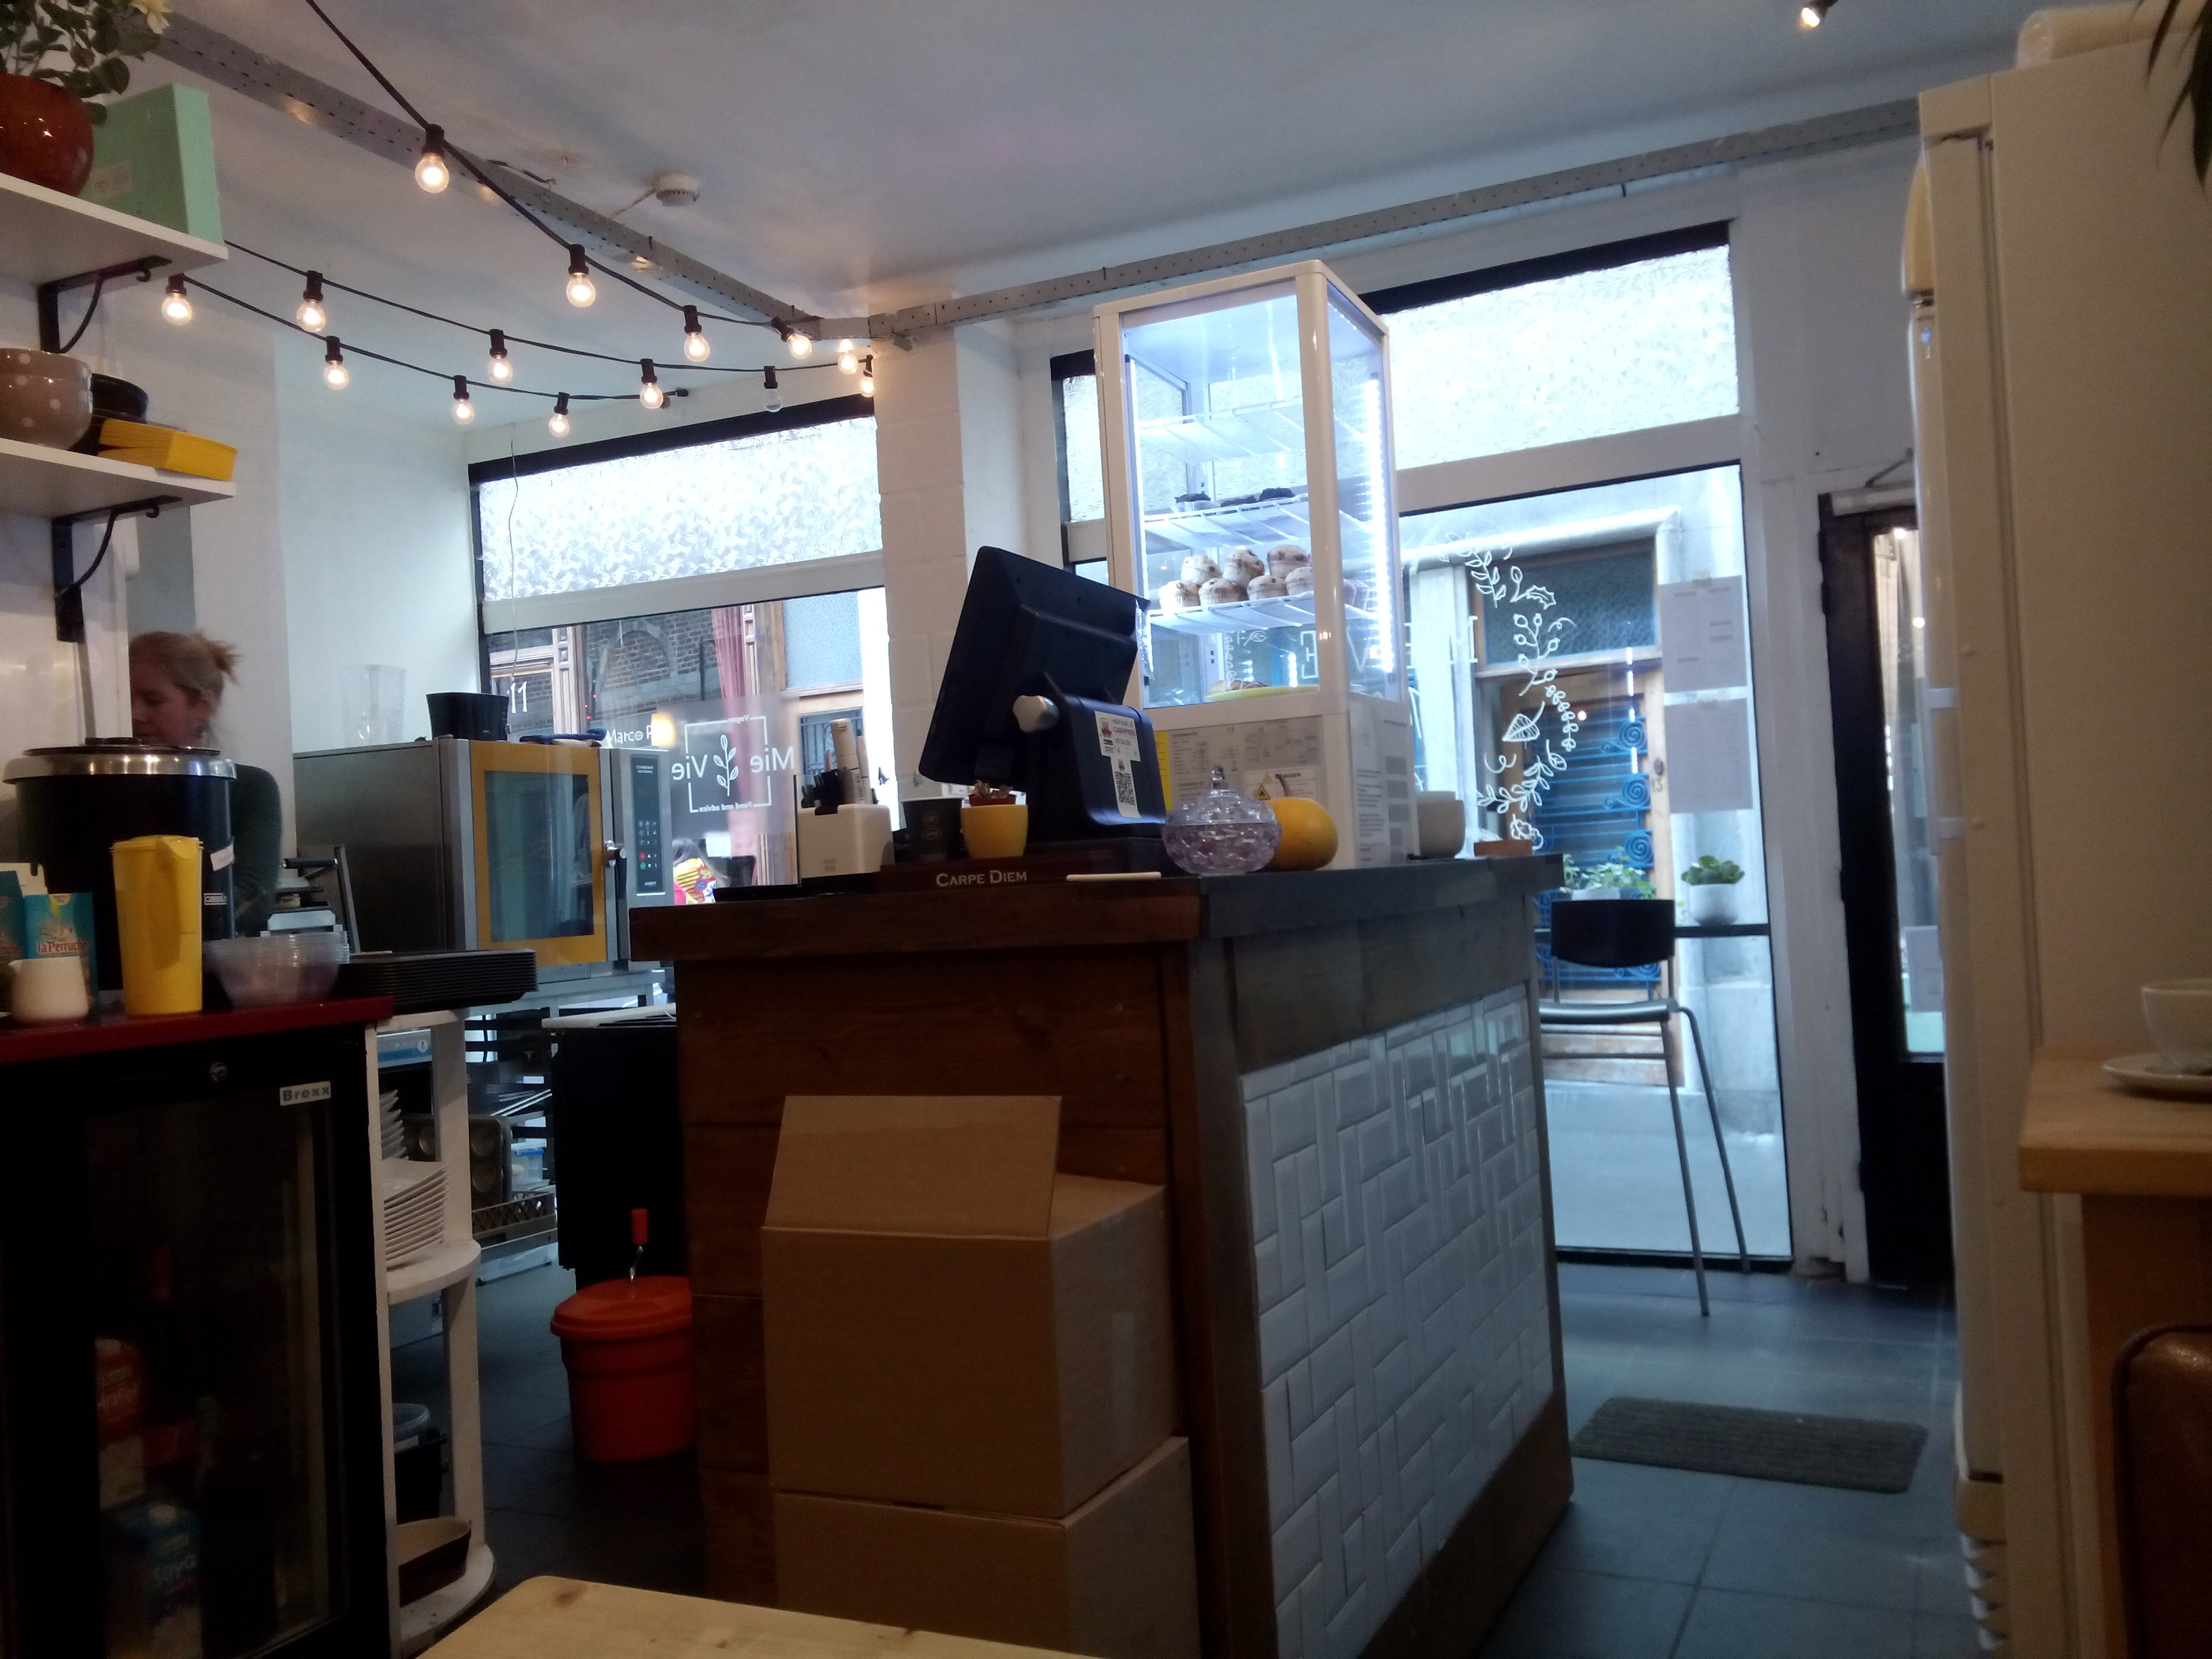 A cafe counter and front door from inside